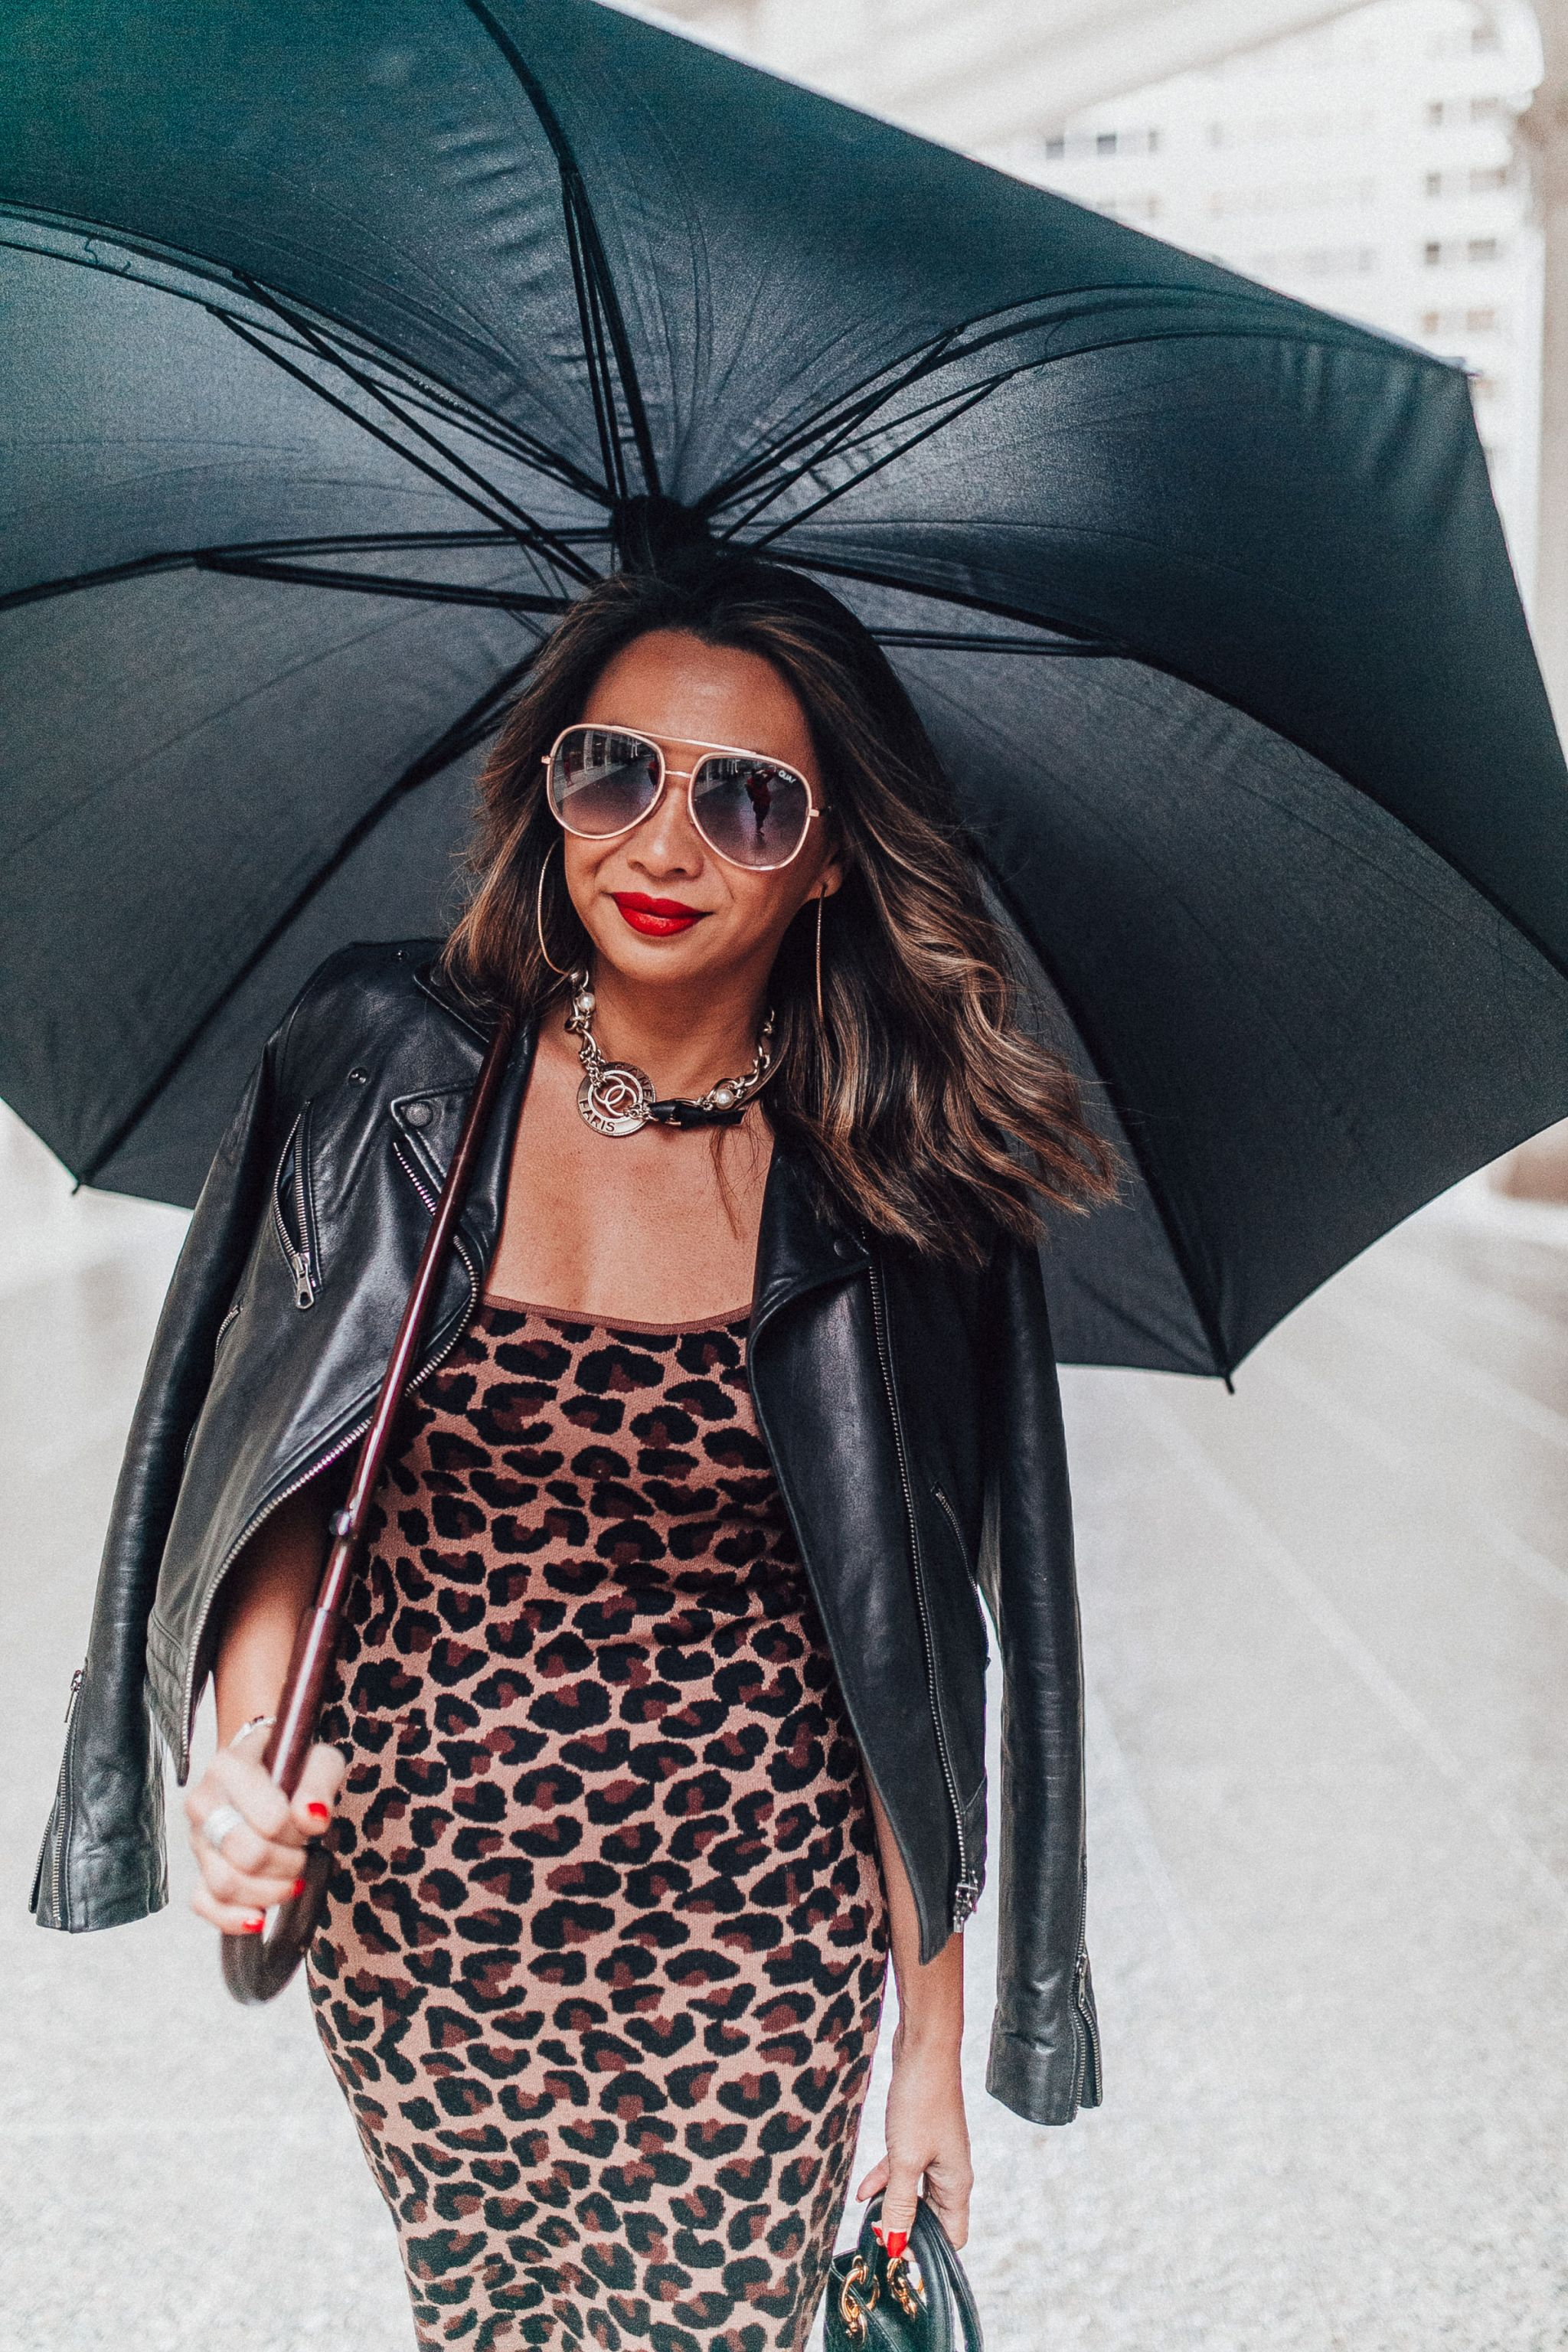 Jennifer Worman, Chicago Blogger, best chicago blogger, fashion blogger, style blogger, Q&A about me, leopard dress, red heels, leather jacket, how to style a leopard dress